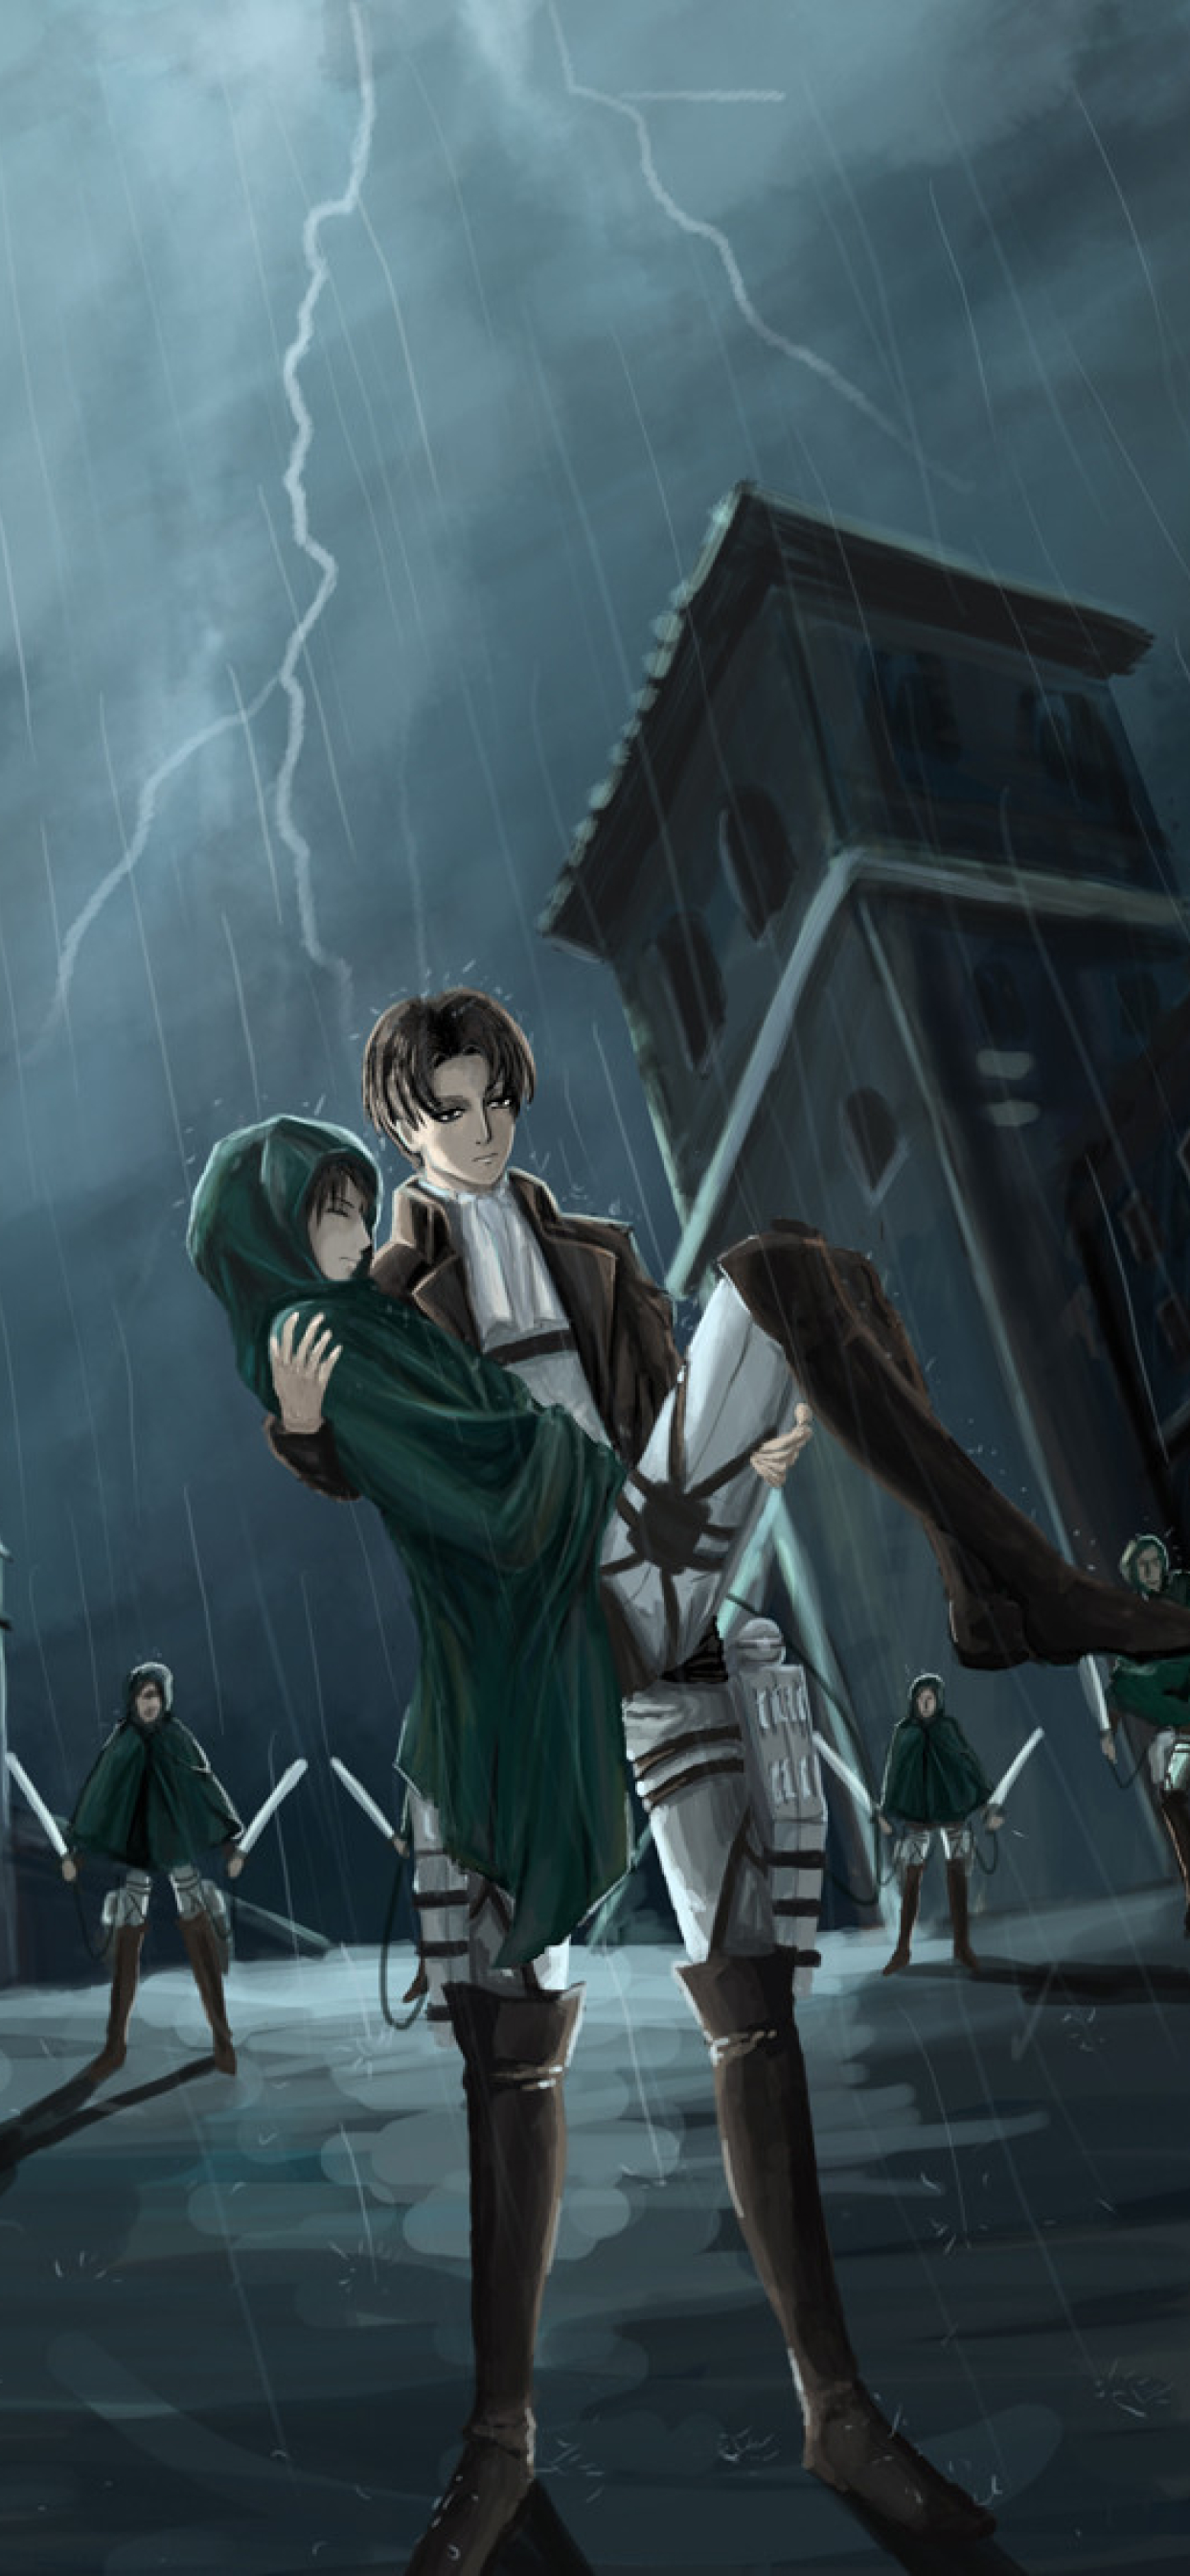 1242x2688 Levi Ackerman Aot Iphone Xs Max Wallpaper Hd Anime 4k Wallpapers Images Photos And Background